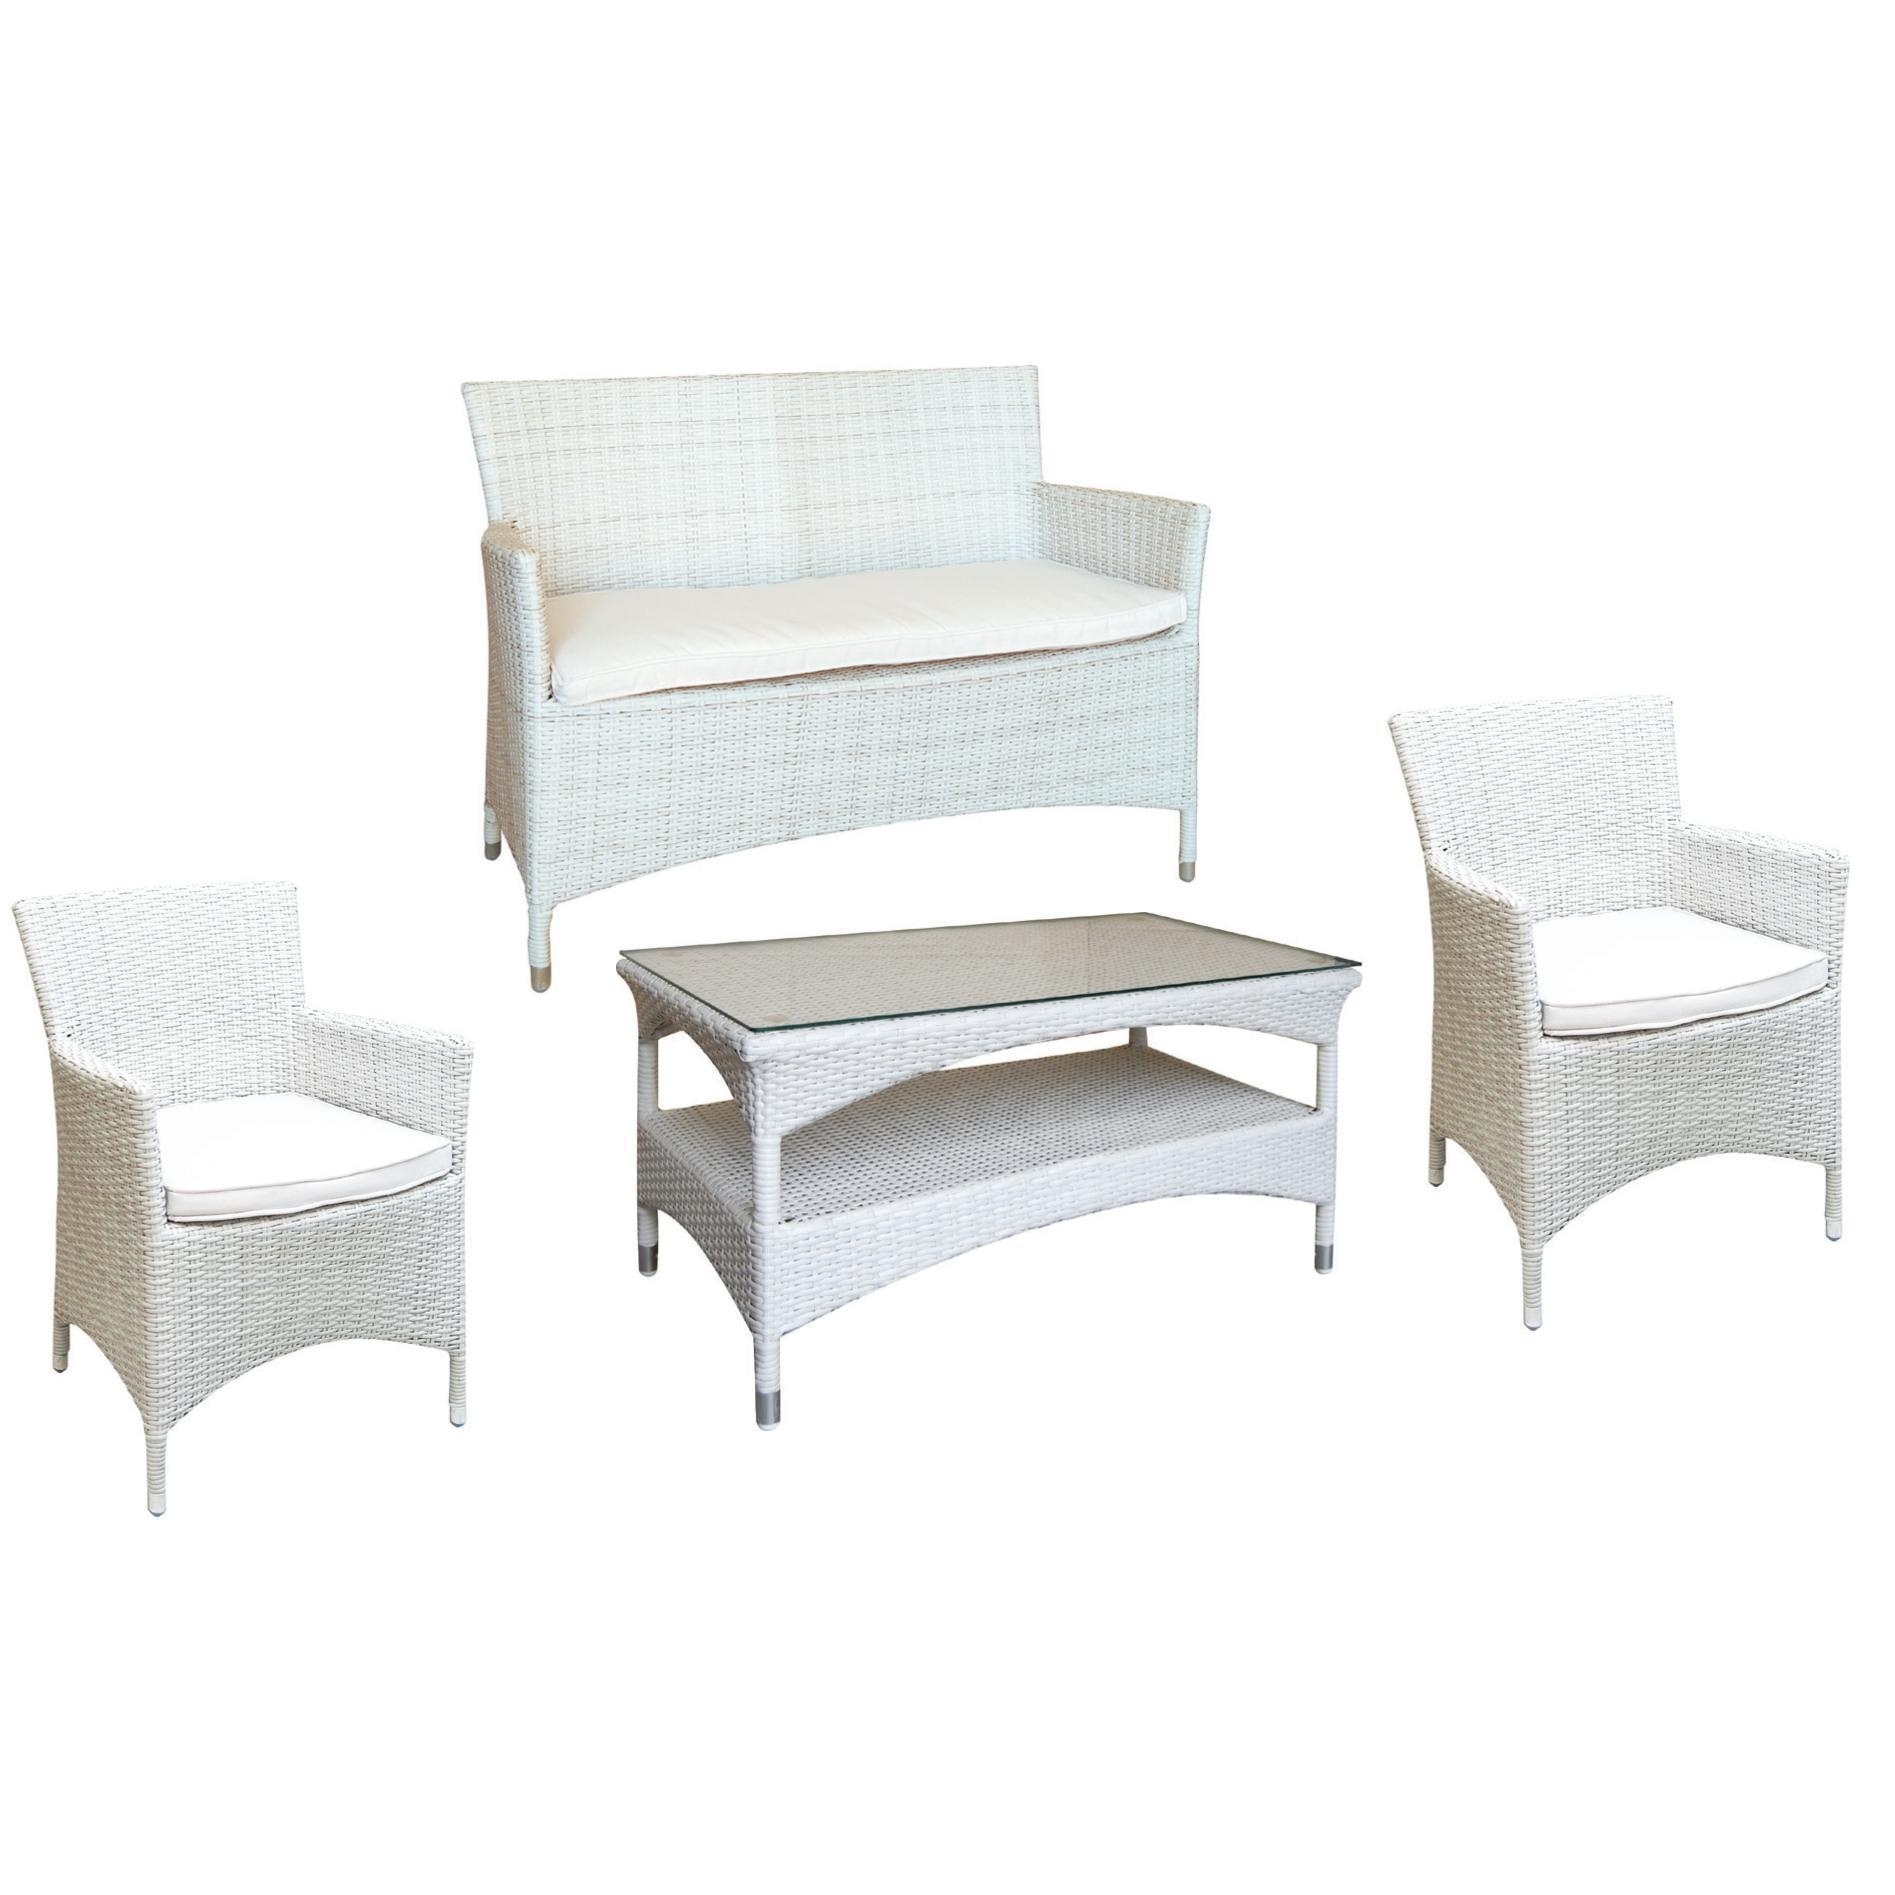 Set Sofa 2 Seats White Armchair Coffee Table